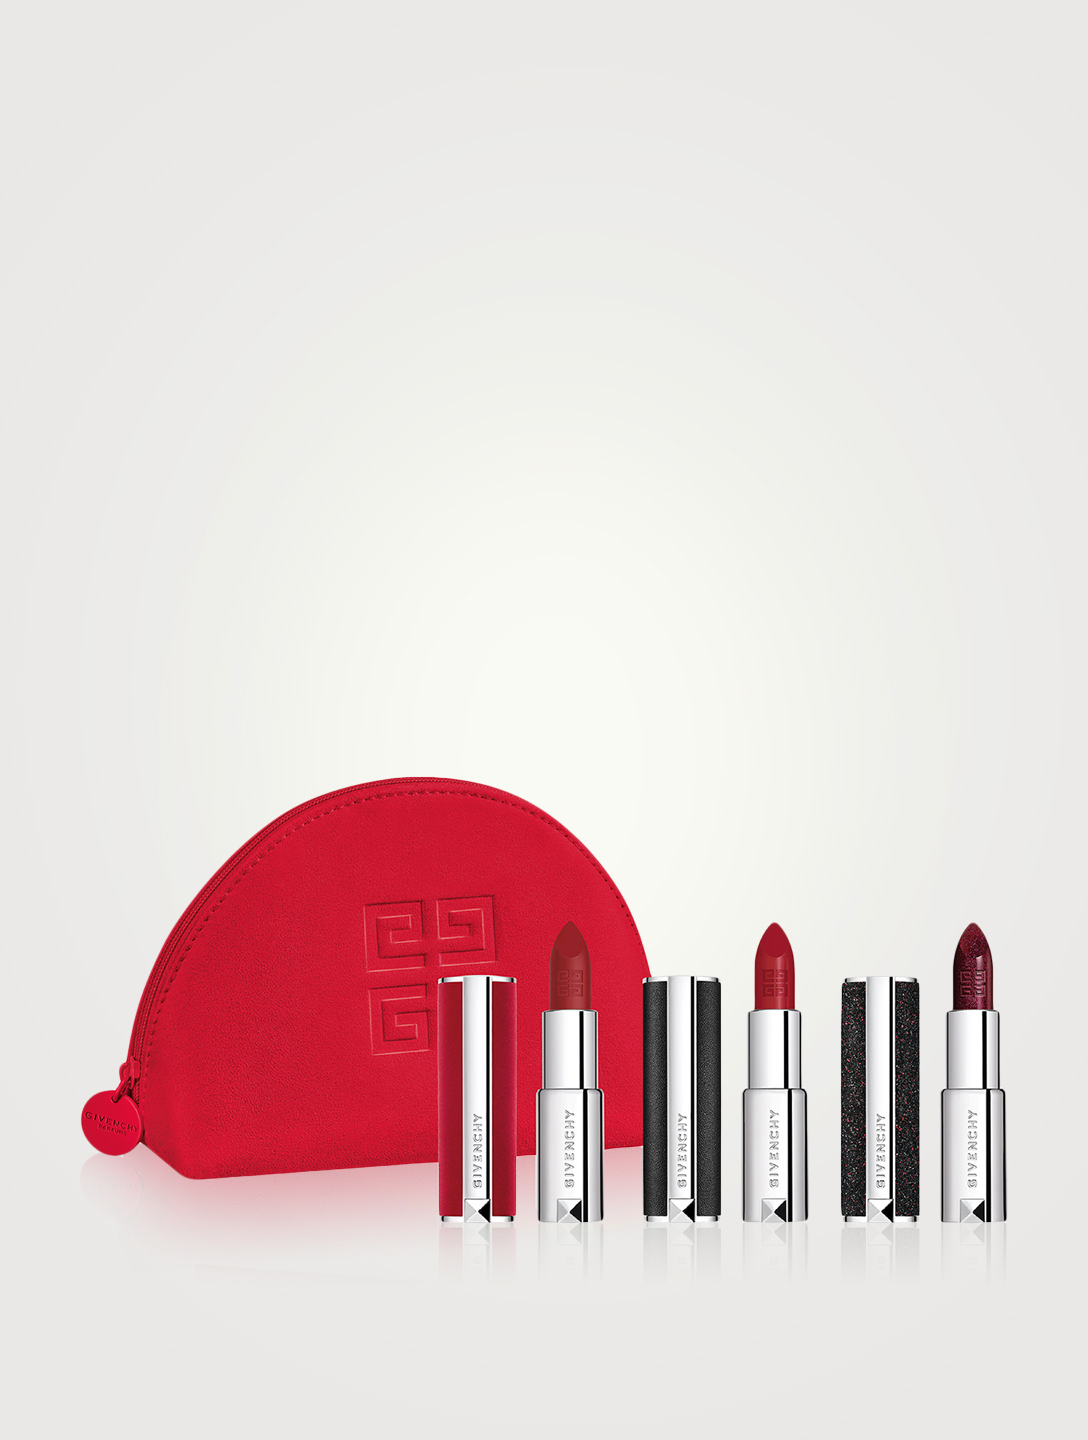 GIVENCHY Le Rouge Lipstick Trio Beauty